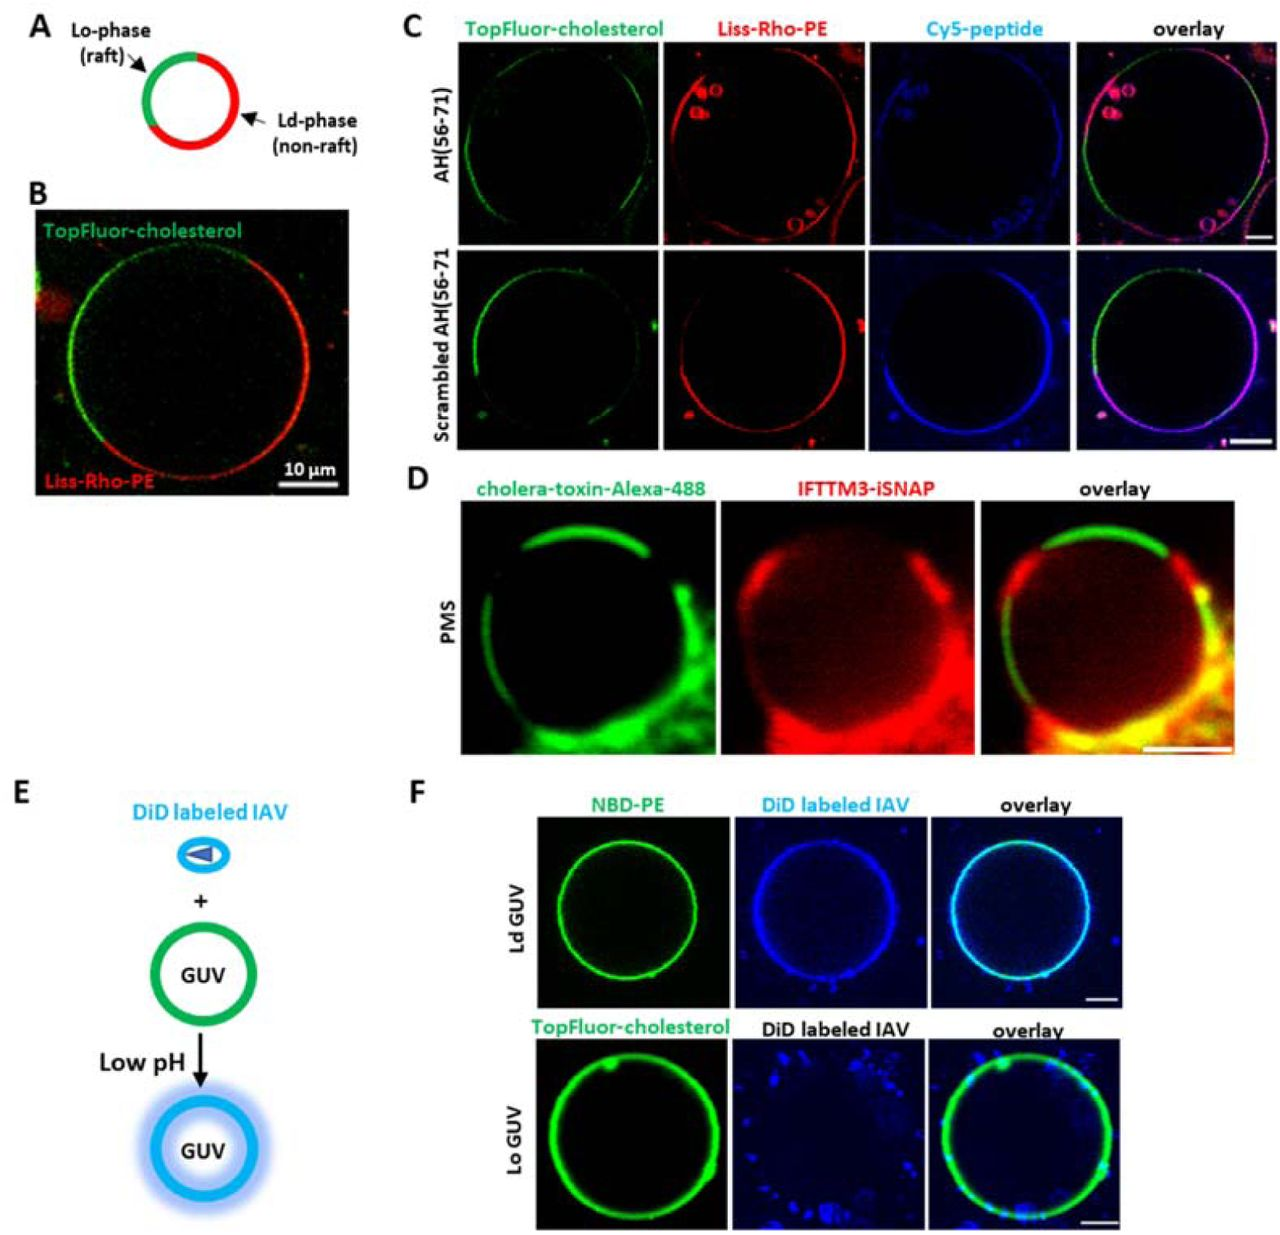 IFITM3 partitions into liquid-disordered membrane domains that support IAV fusion. (A) A diagram of phase-separated GUV. (B) A representative example of phase-separated GUV containing 33.3 mol % DOPC, 33.3 mol % SM, 32.4 mol % cholesterol, 0.5 mol % TopFluor-cholesterol (marker of Lo domain) and 0.5% Liss-Rho-PE (marker of Ld domain). (C) Phase-separated GUVs (33.3 mol % DOPC, 33.3 mol % SM, 32.4 mol % cholesterol, 0.5 mol % TopFluor-cholesterol and 0.5% Liss-Rho-PE) were incubated with 10 μM of Cy-5-labeled AH (56-71) or Scrambled AH(56-71) for 30 min and imaged. Scale bars 10 μm. (D) Plasma membrane spheres were prepared from IFITM3-iSNAP expressing A549 cells by cell swelling. GM1 was crosslinked with Cholera toxin B-AF488 (green) to mark the Lo phase and SNAP tag was stained with SNAP-cell 647-SIR (red). Scale bar 2 μm. (E) A diagram depicting lipid mixing between DiD-labeled IAV and GUV triggered by low pH leading to DiD dequenching. (F) Ld GUVs (top, 97.5 mol % DOPC, 2% GM1, 0.5% NBD-PE) or Lo GUVs (bottom, 66.6 mol % SM, 30.9 mol % cholesterol, 2% GM1, 0.5 mol % TopFluor-cholesterol) were mixed with DiD labeled IAV, lipids mixing was triggered by addition of citrate buffer to achieve the final pH of 5.0, and samples immediately imaged. Scale bars 5 μm. See also Figure S4.